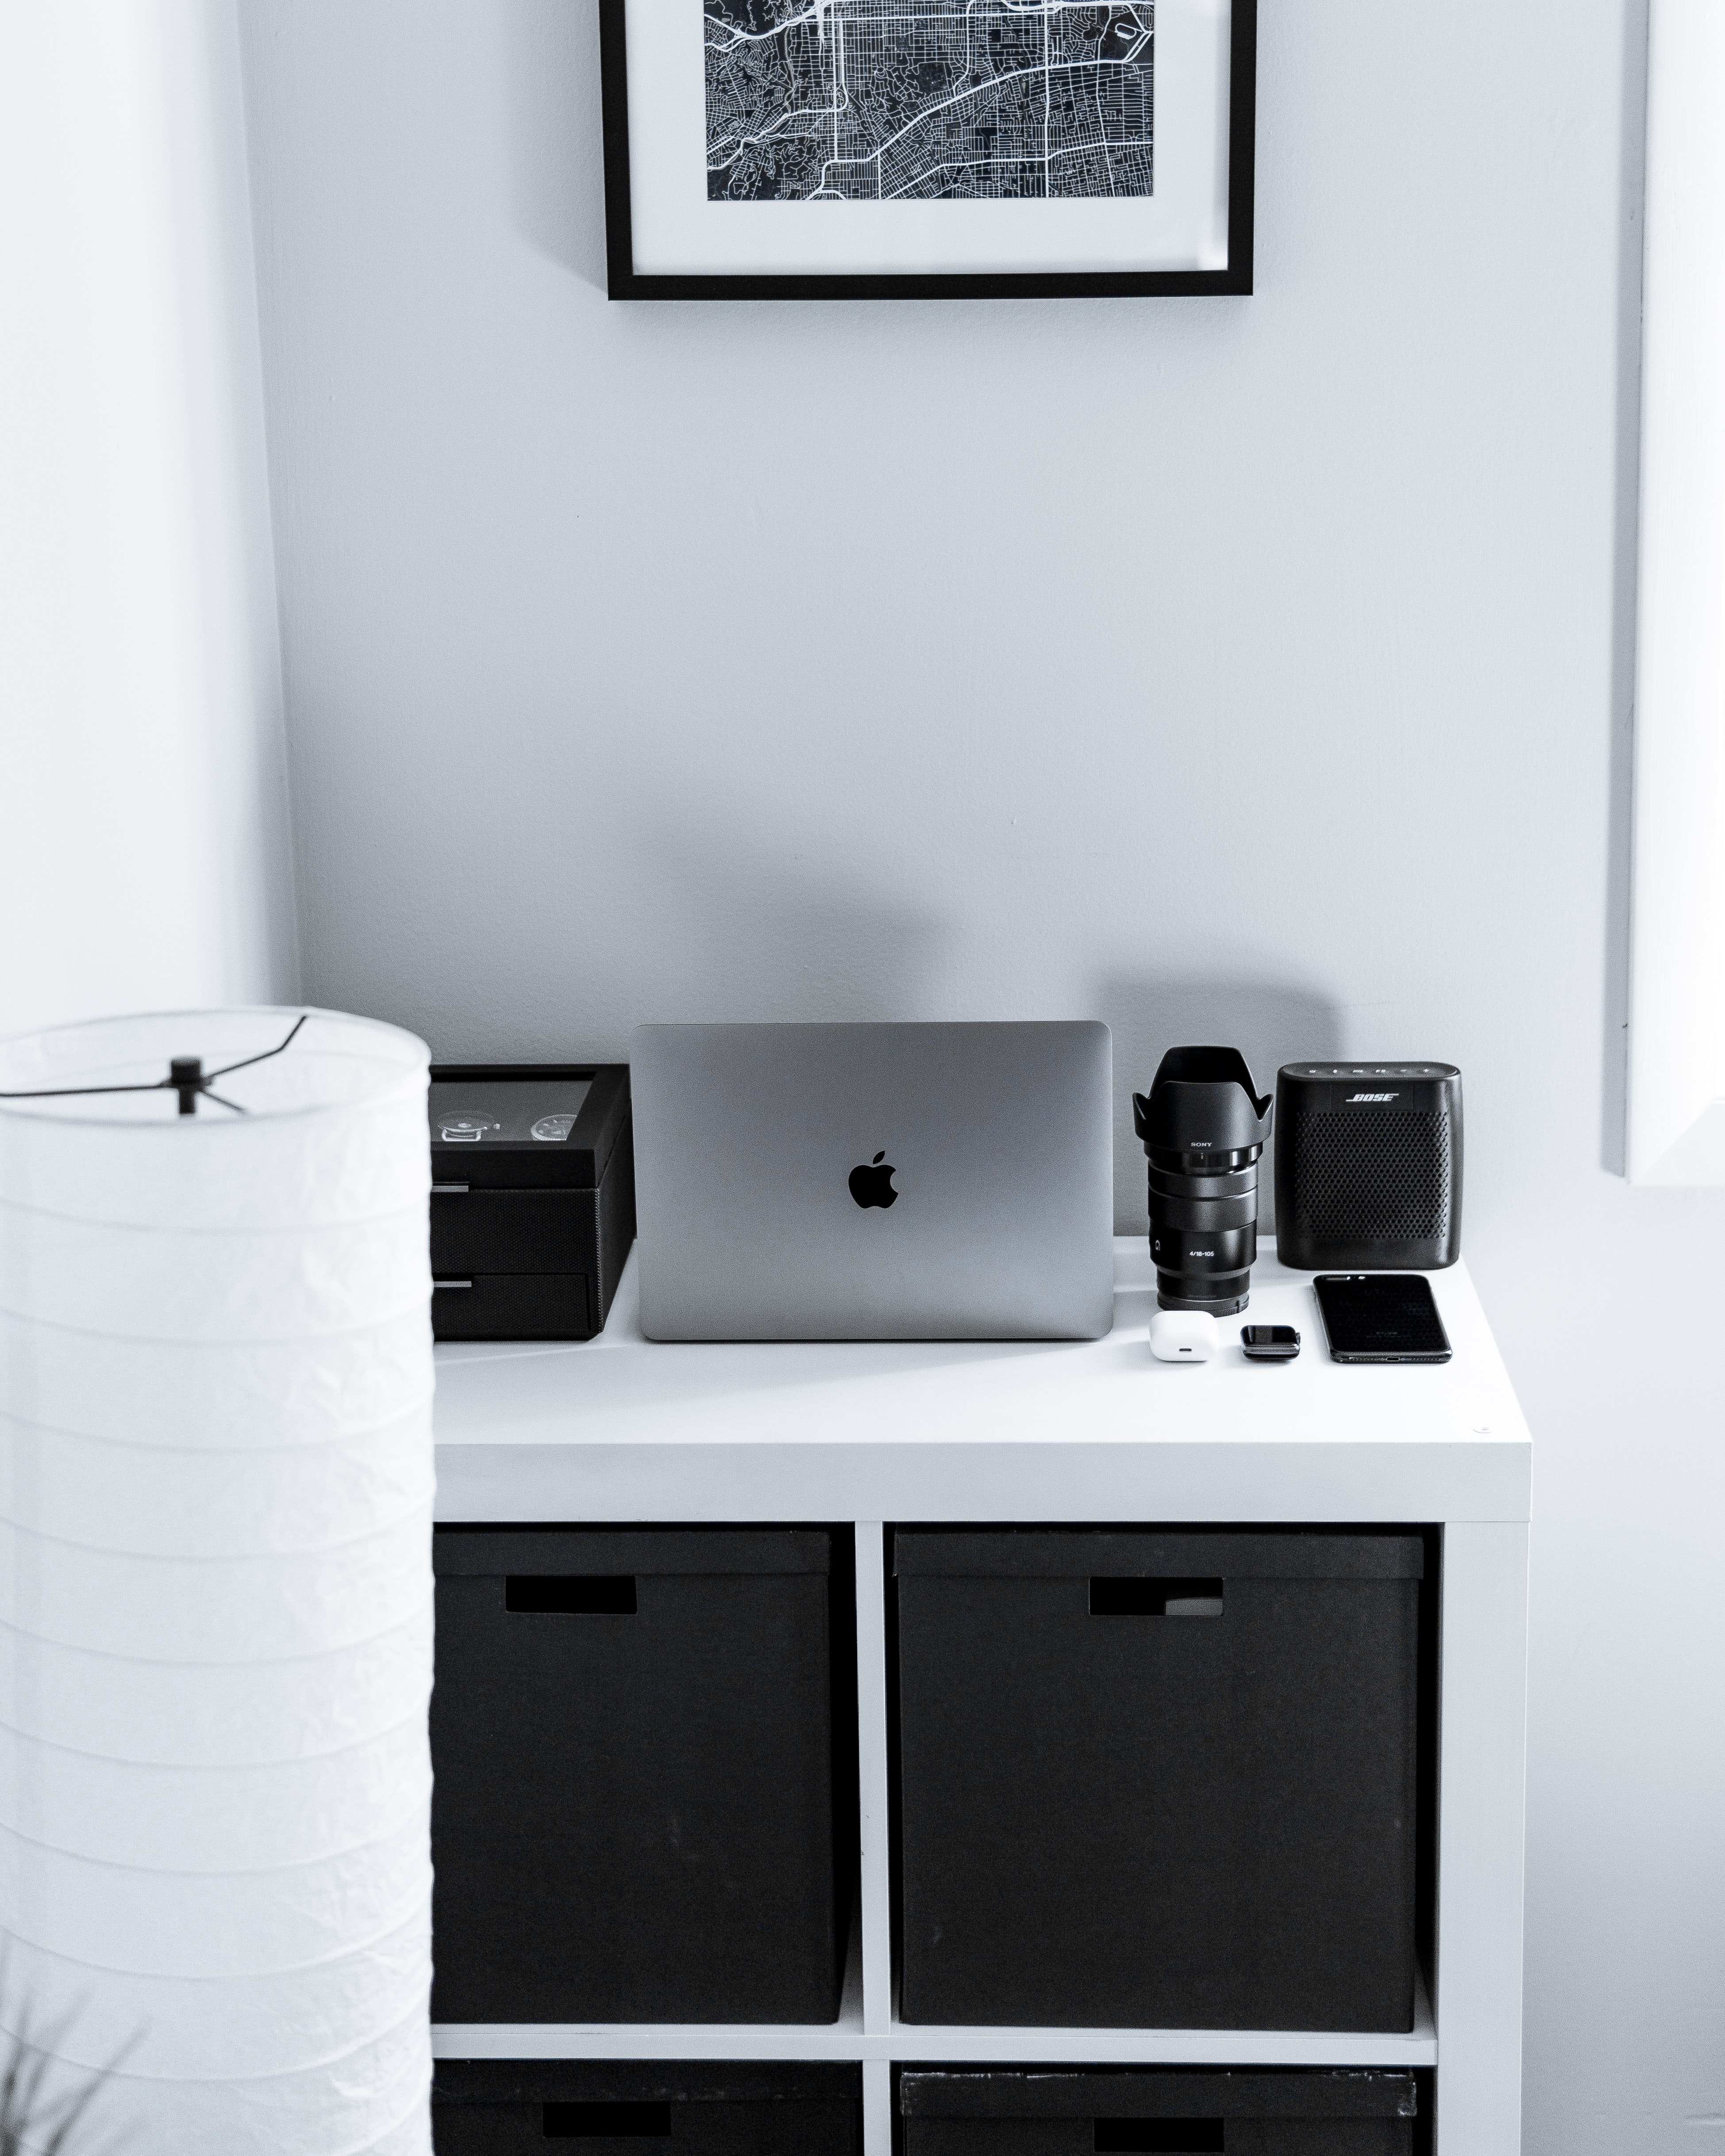 silver MacBook beside black camera lens and speaker on dresser